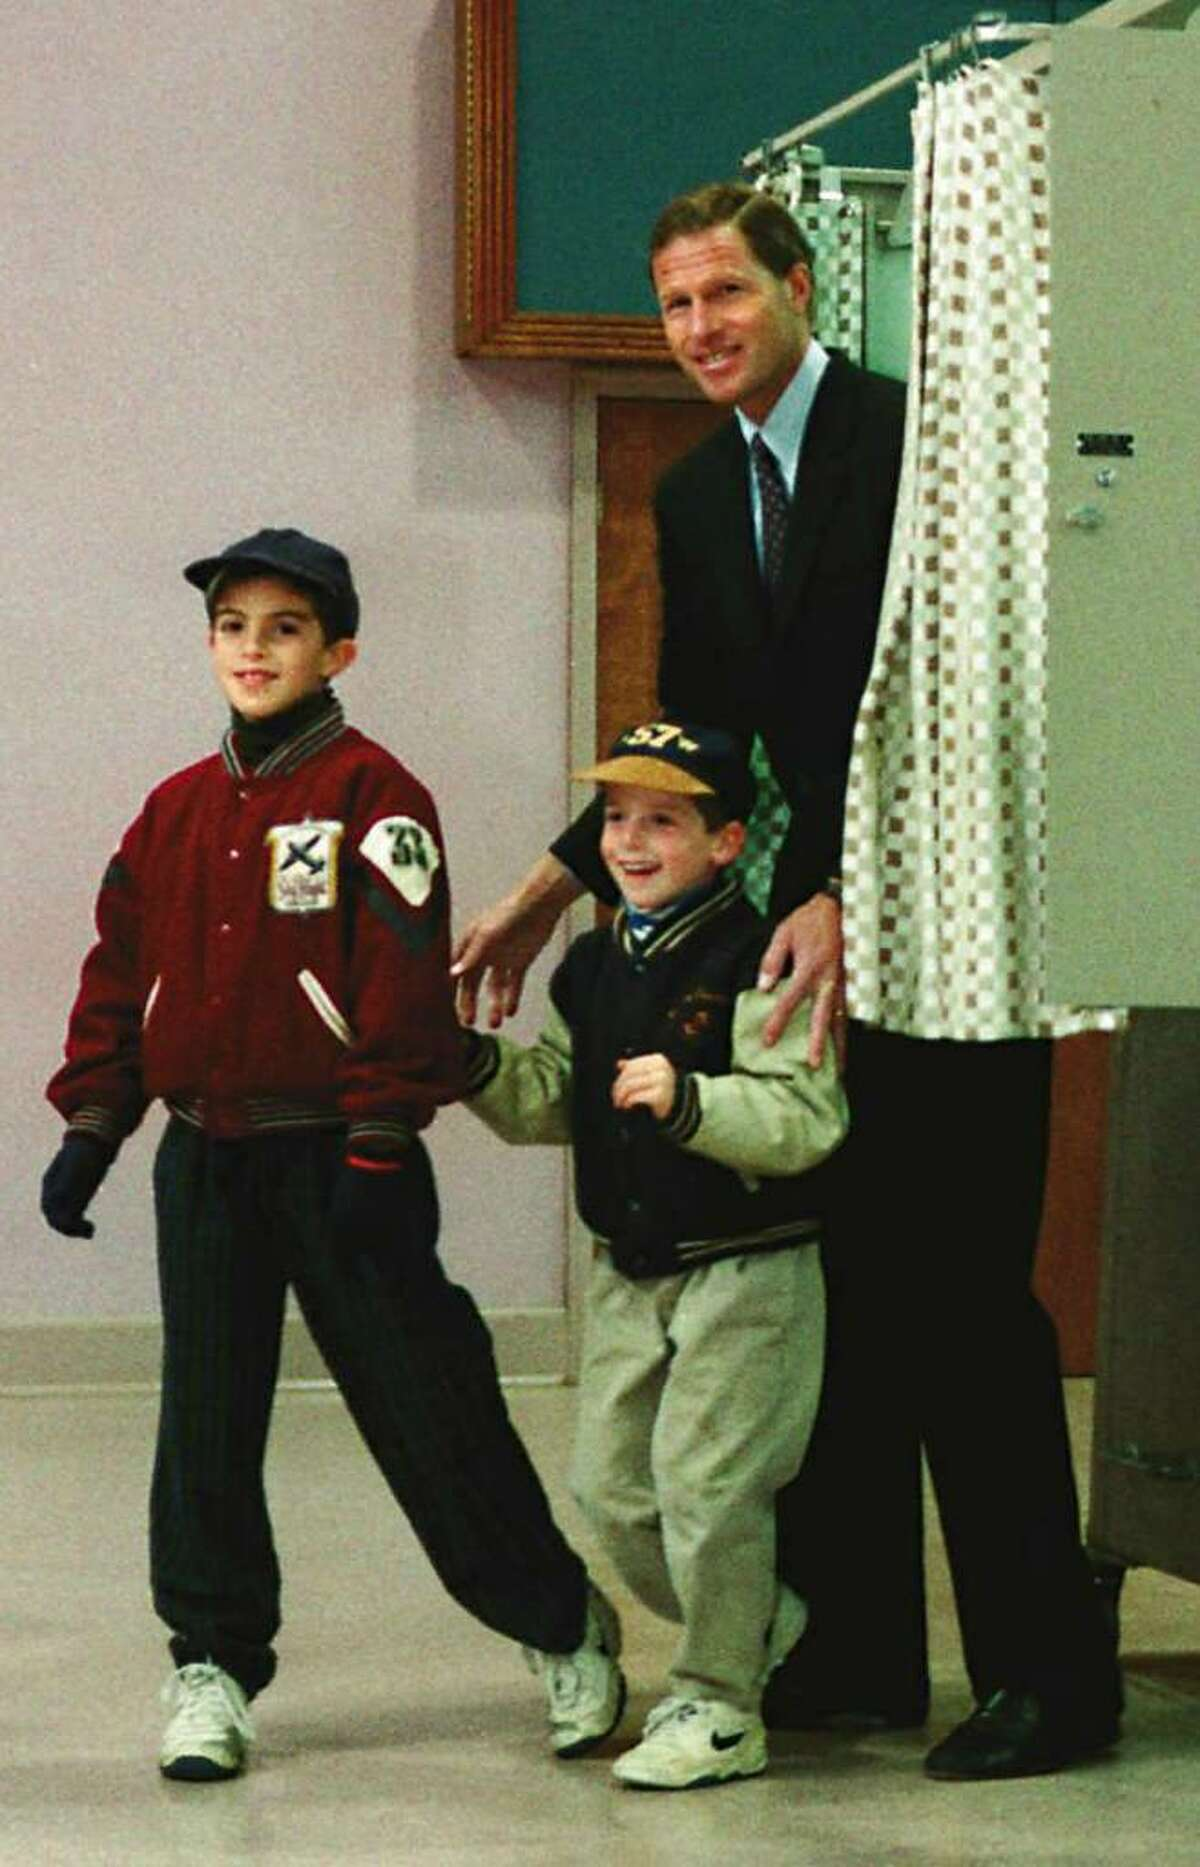 State Attorney General Richard Blumenthal and his sons, Matthew, 8 and Michael, 5, leave the booth after voting in Stamford on Nov. 8th, 1994.